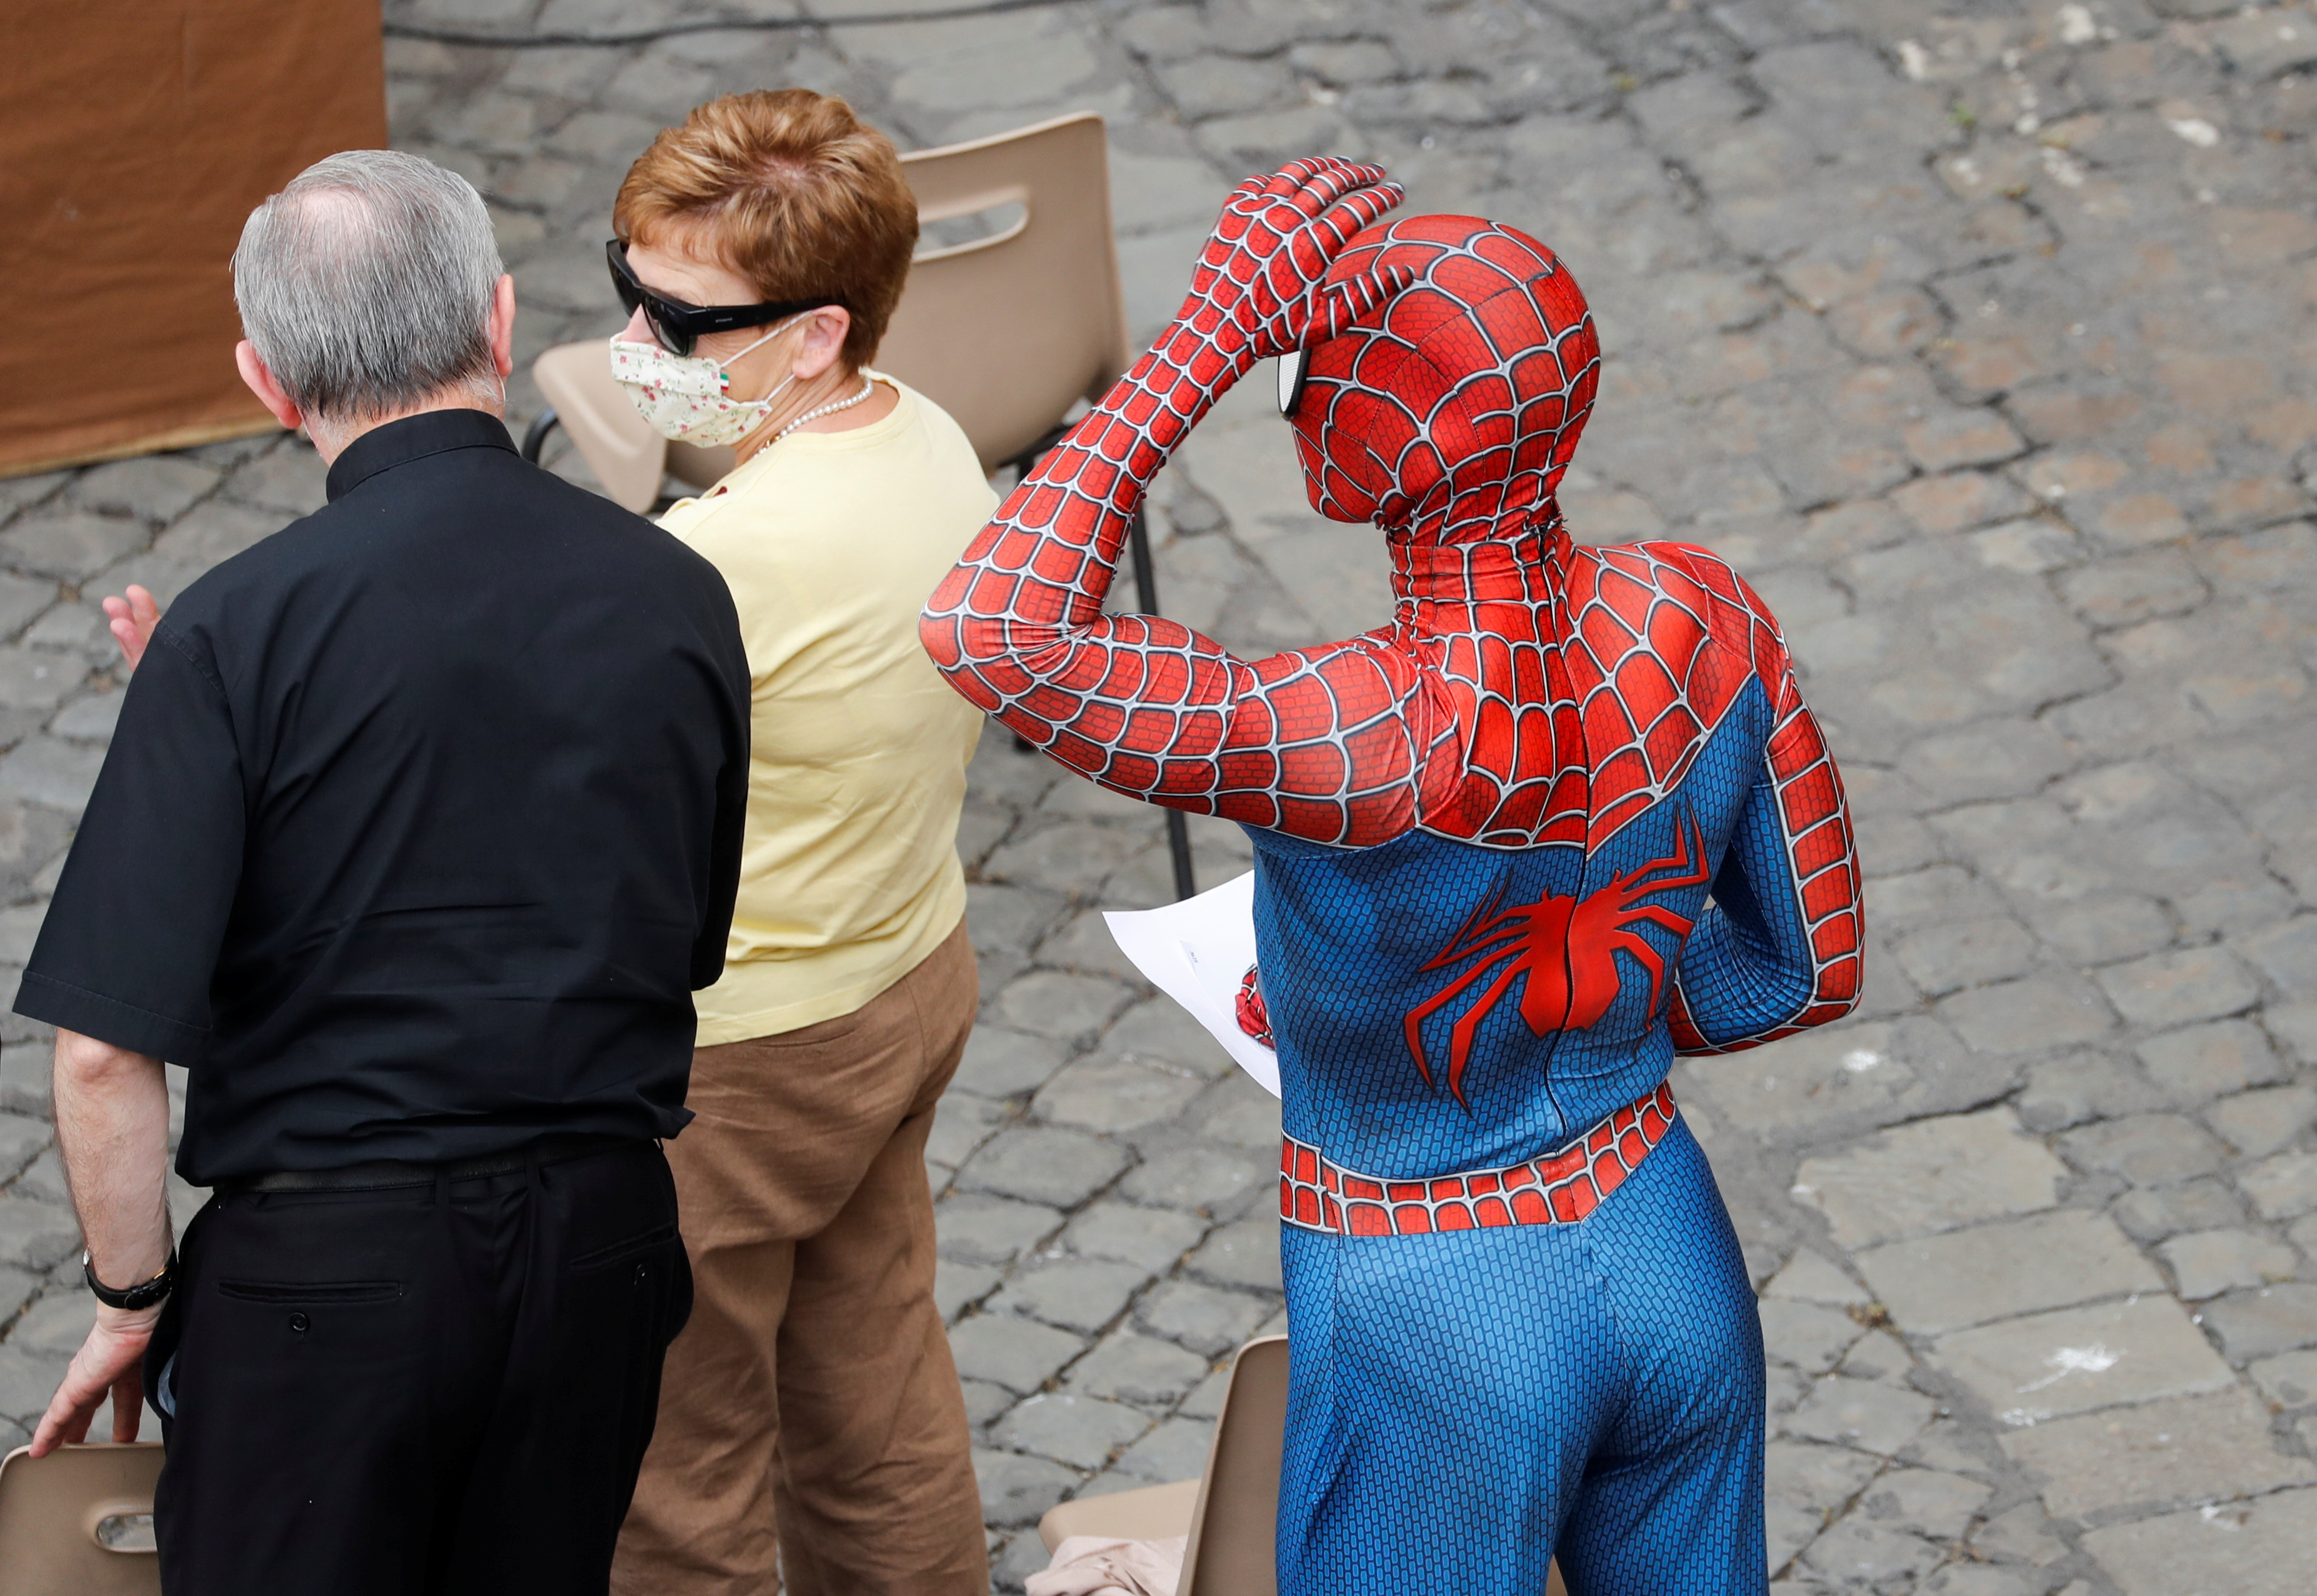 A person dressed as Spiderman stands amongst the faithful listening to Pope Francis at the general audience, amid the coronavirus disease (COVID-19) pandemic, at the Vatican, June 23, 2021. REUTERS/Remo Casilli